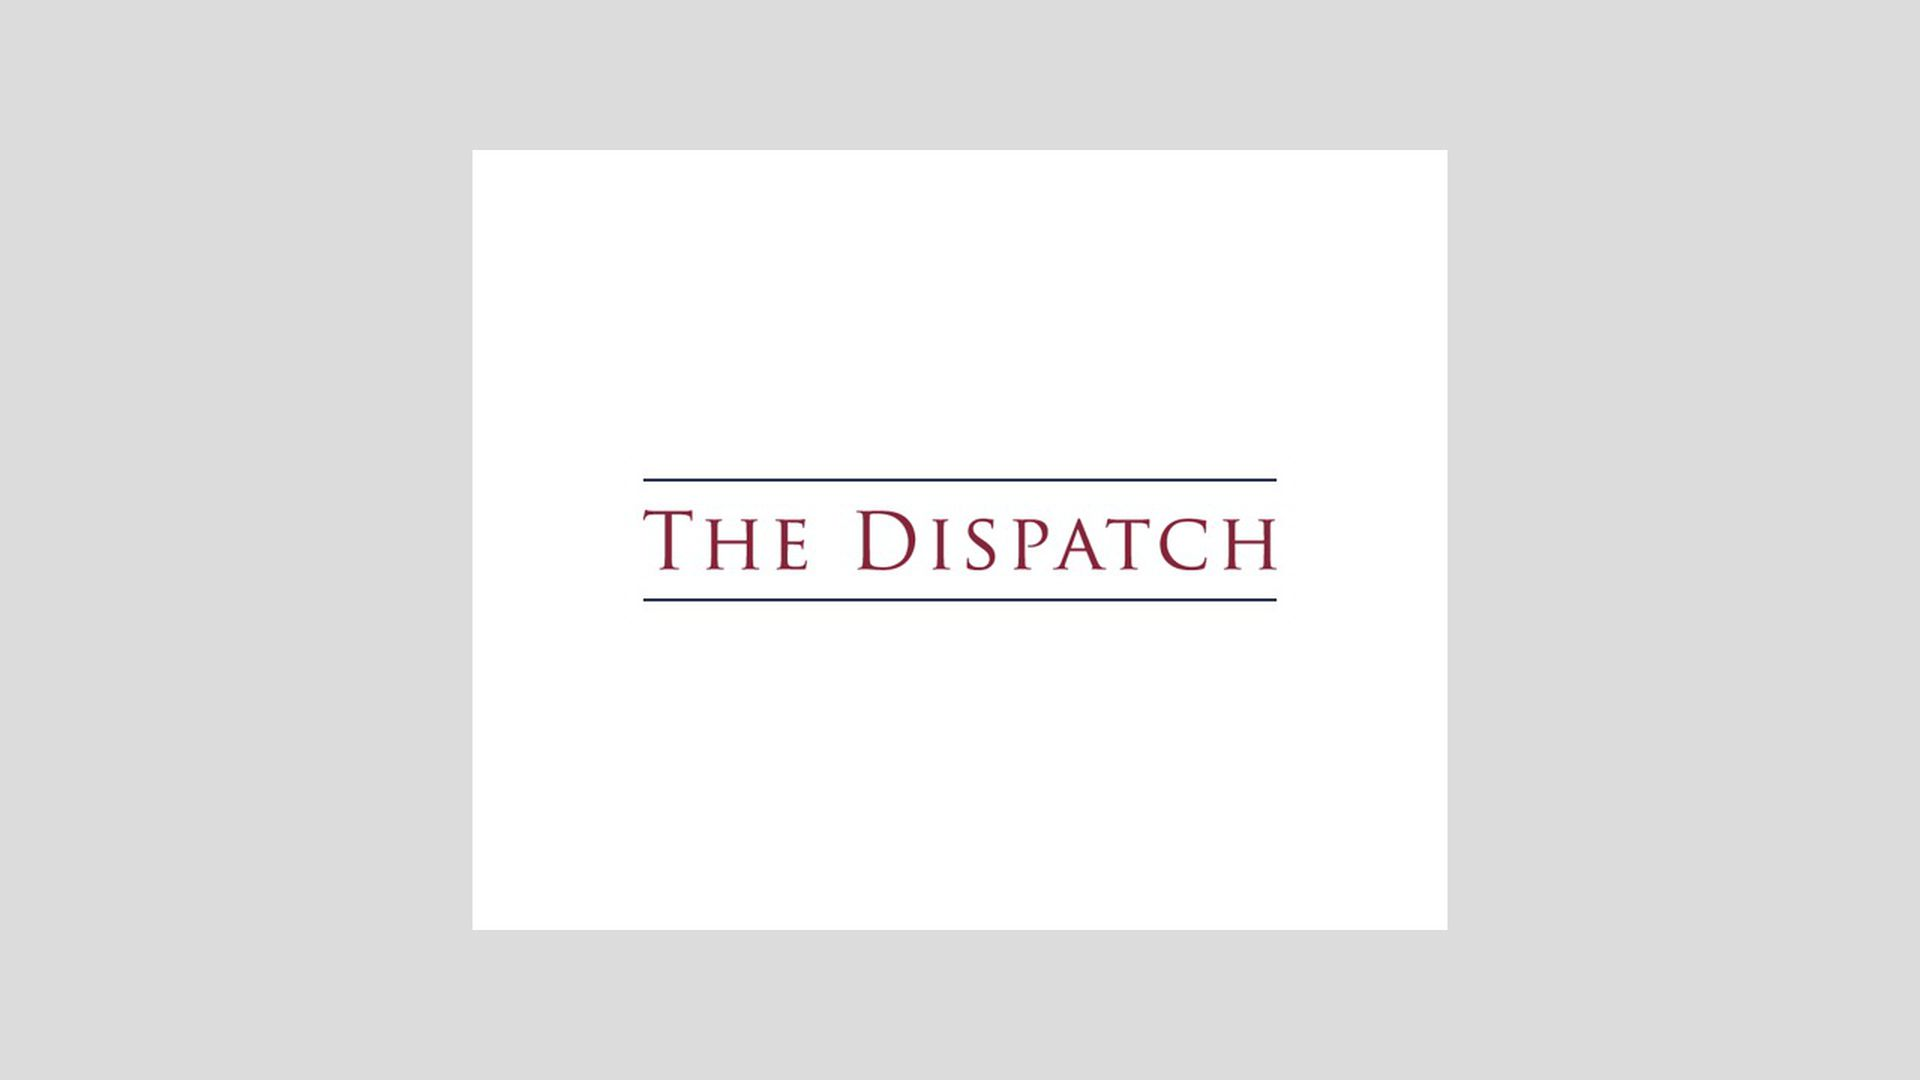 Steve Hayes and Jonah Goldberg will launch The Dispatch as a new voice in conservative news